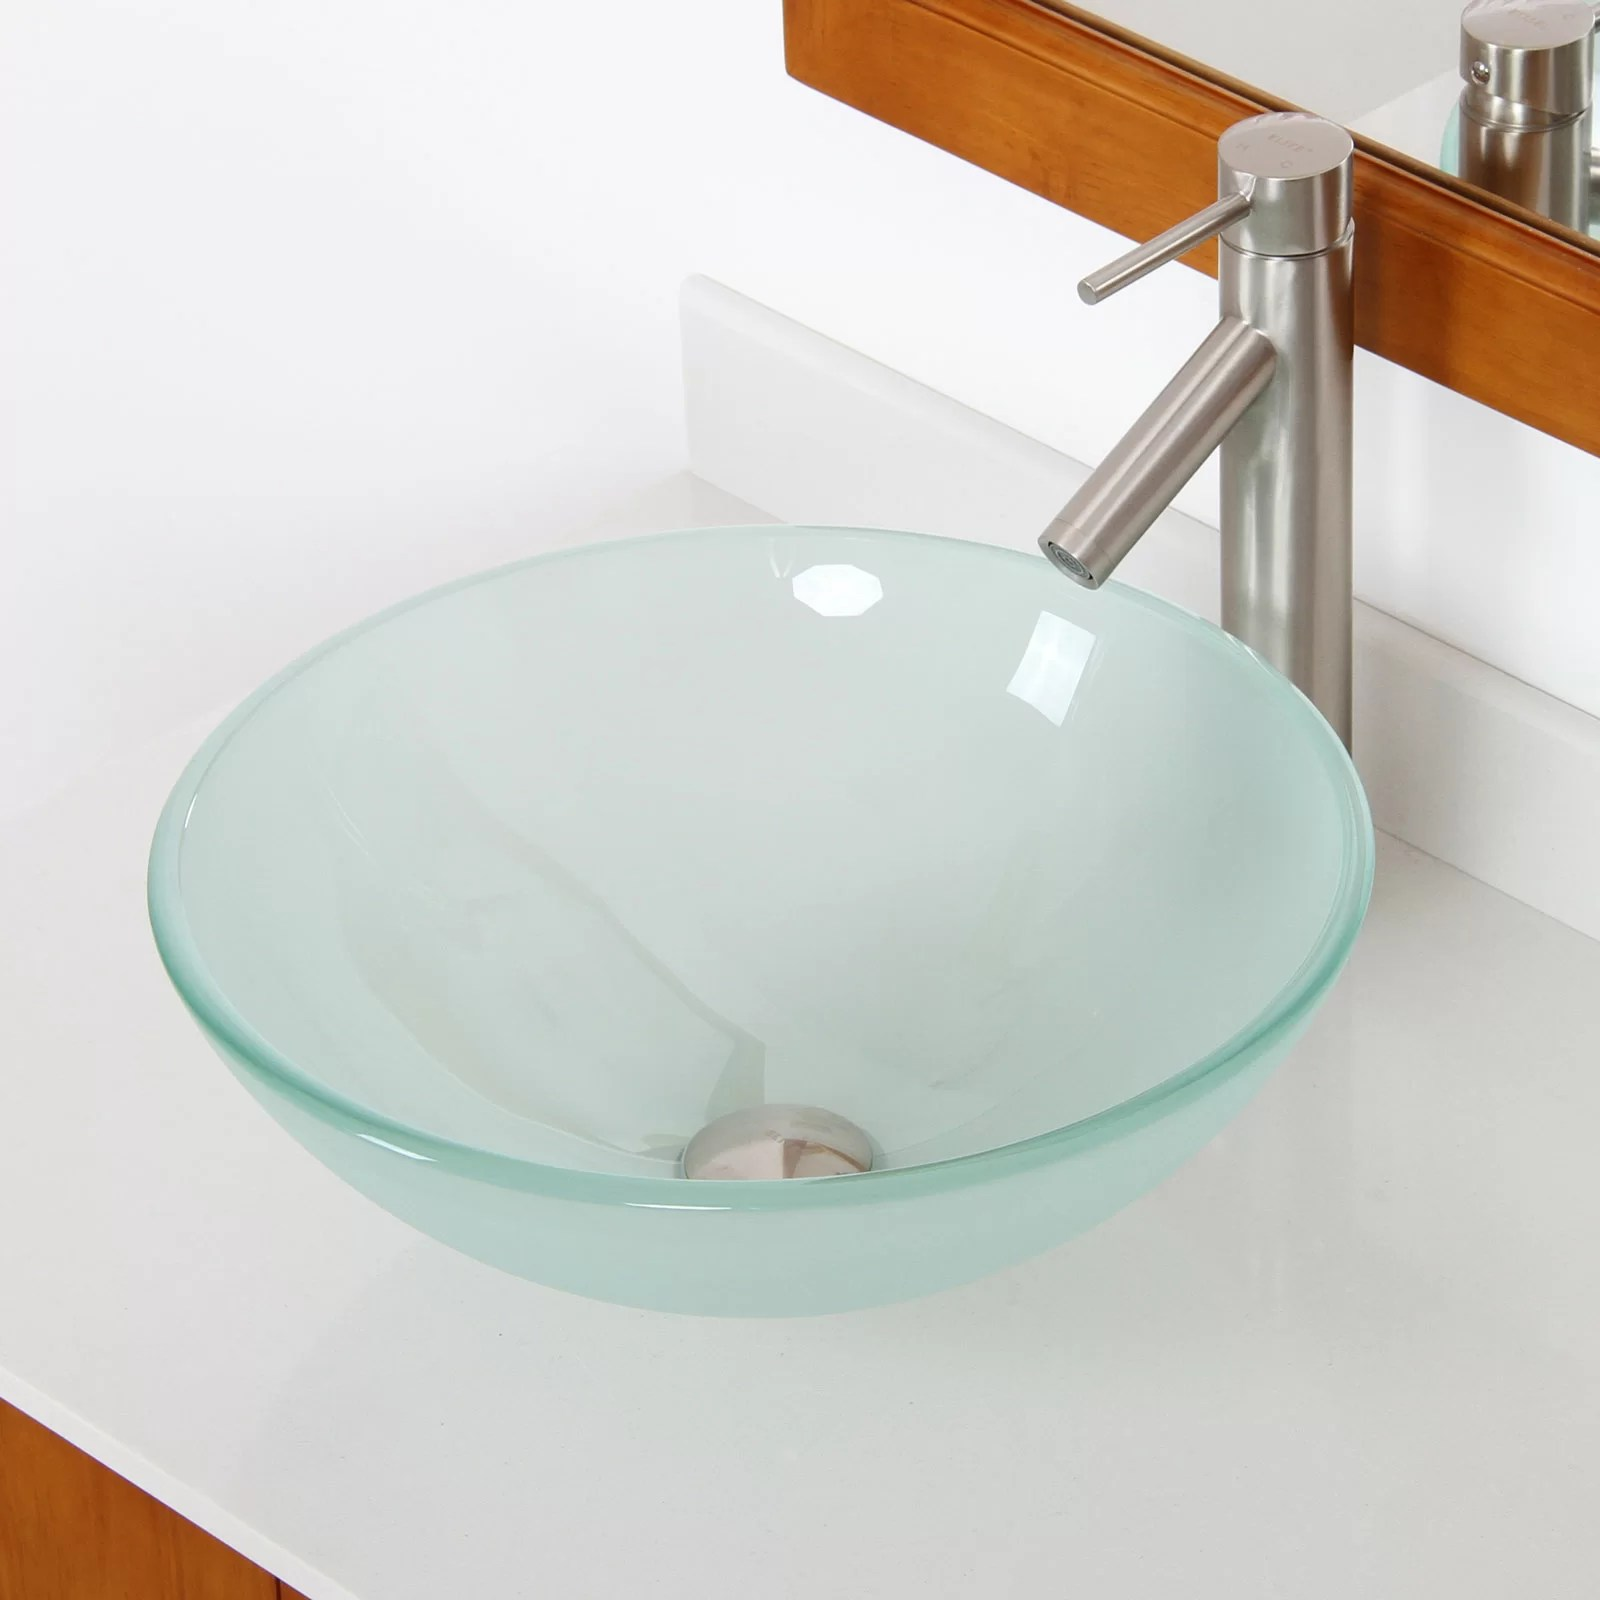 Glass Bathroom Bowls Elite Double Layered Tempered Glass Round Bowl Vessel